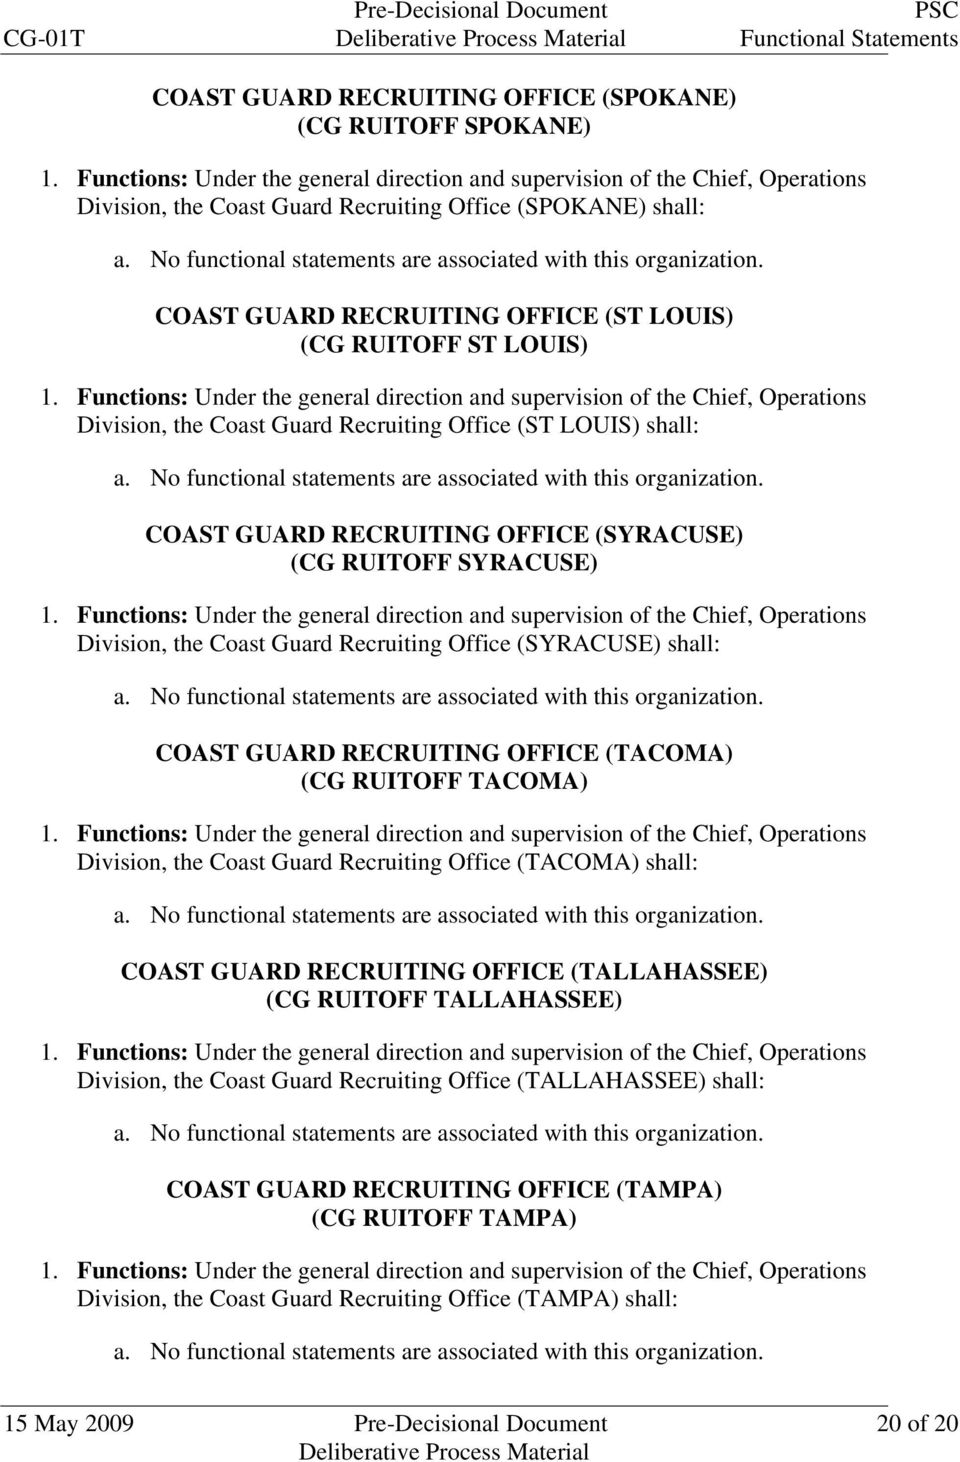 shall: COAST GUARD RECRUITING OFFICE (TACOMA) (CG RUITOFF TACOMA) Division, the Coast Guard Recruiting Office (TACOMA) shall: COAST GUARD RECRUITING OFFICE (TALLAHASSEE) (CG RUITOFF TALLAHASSEE)